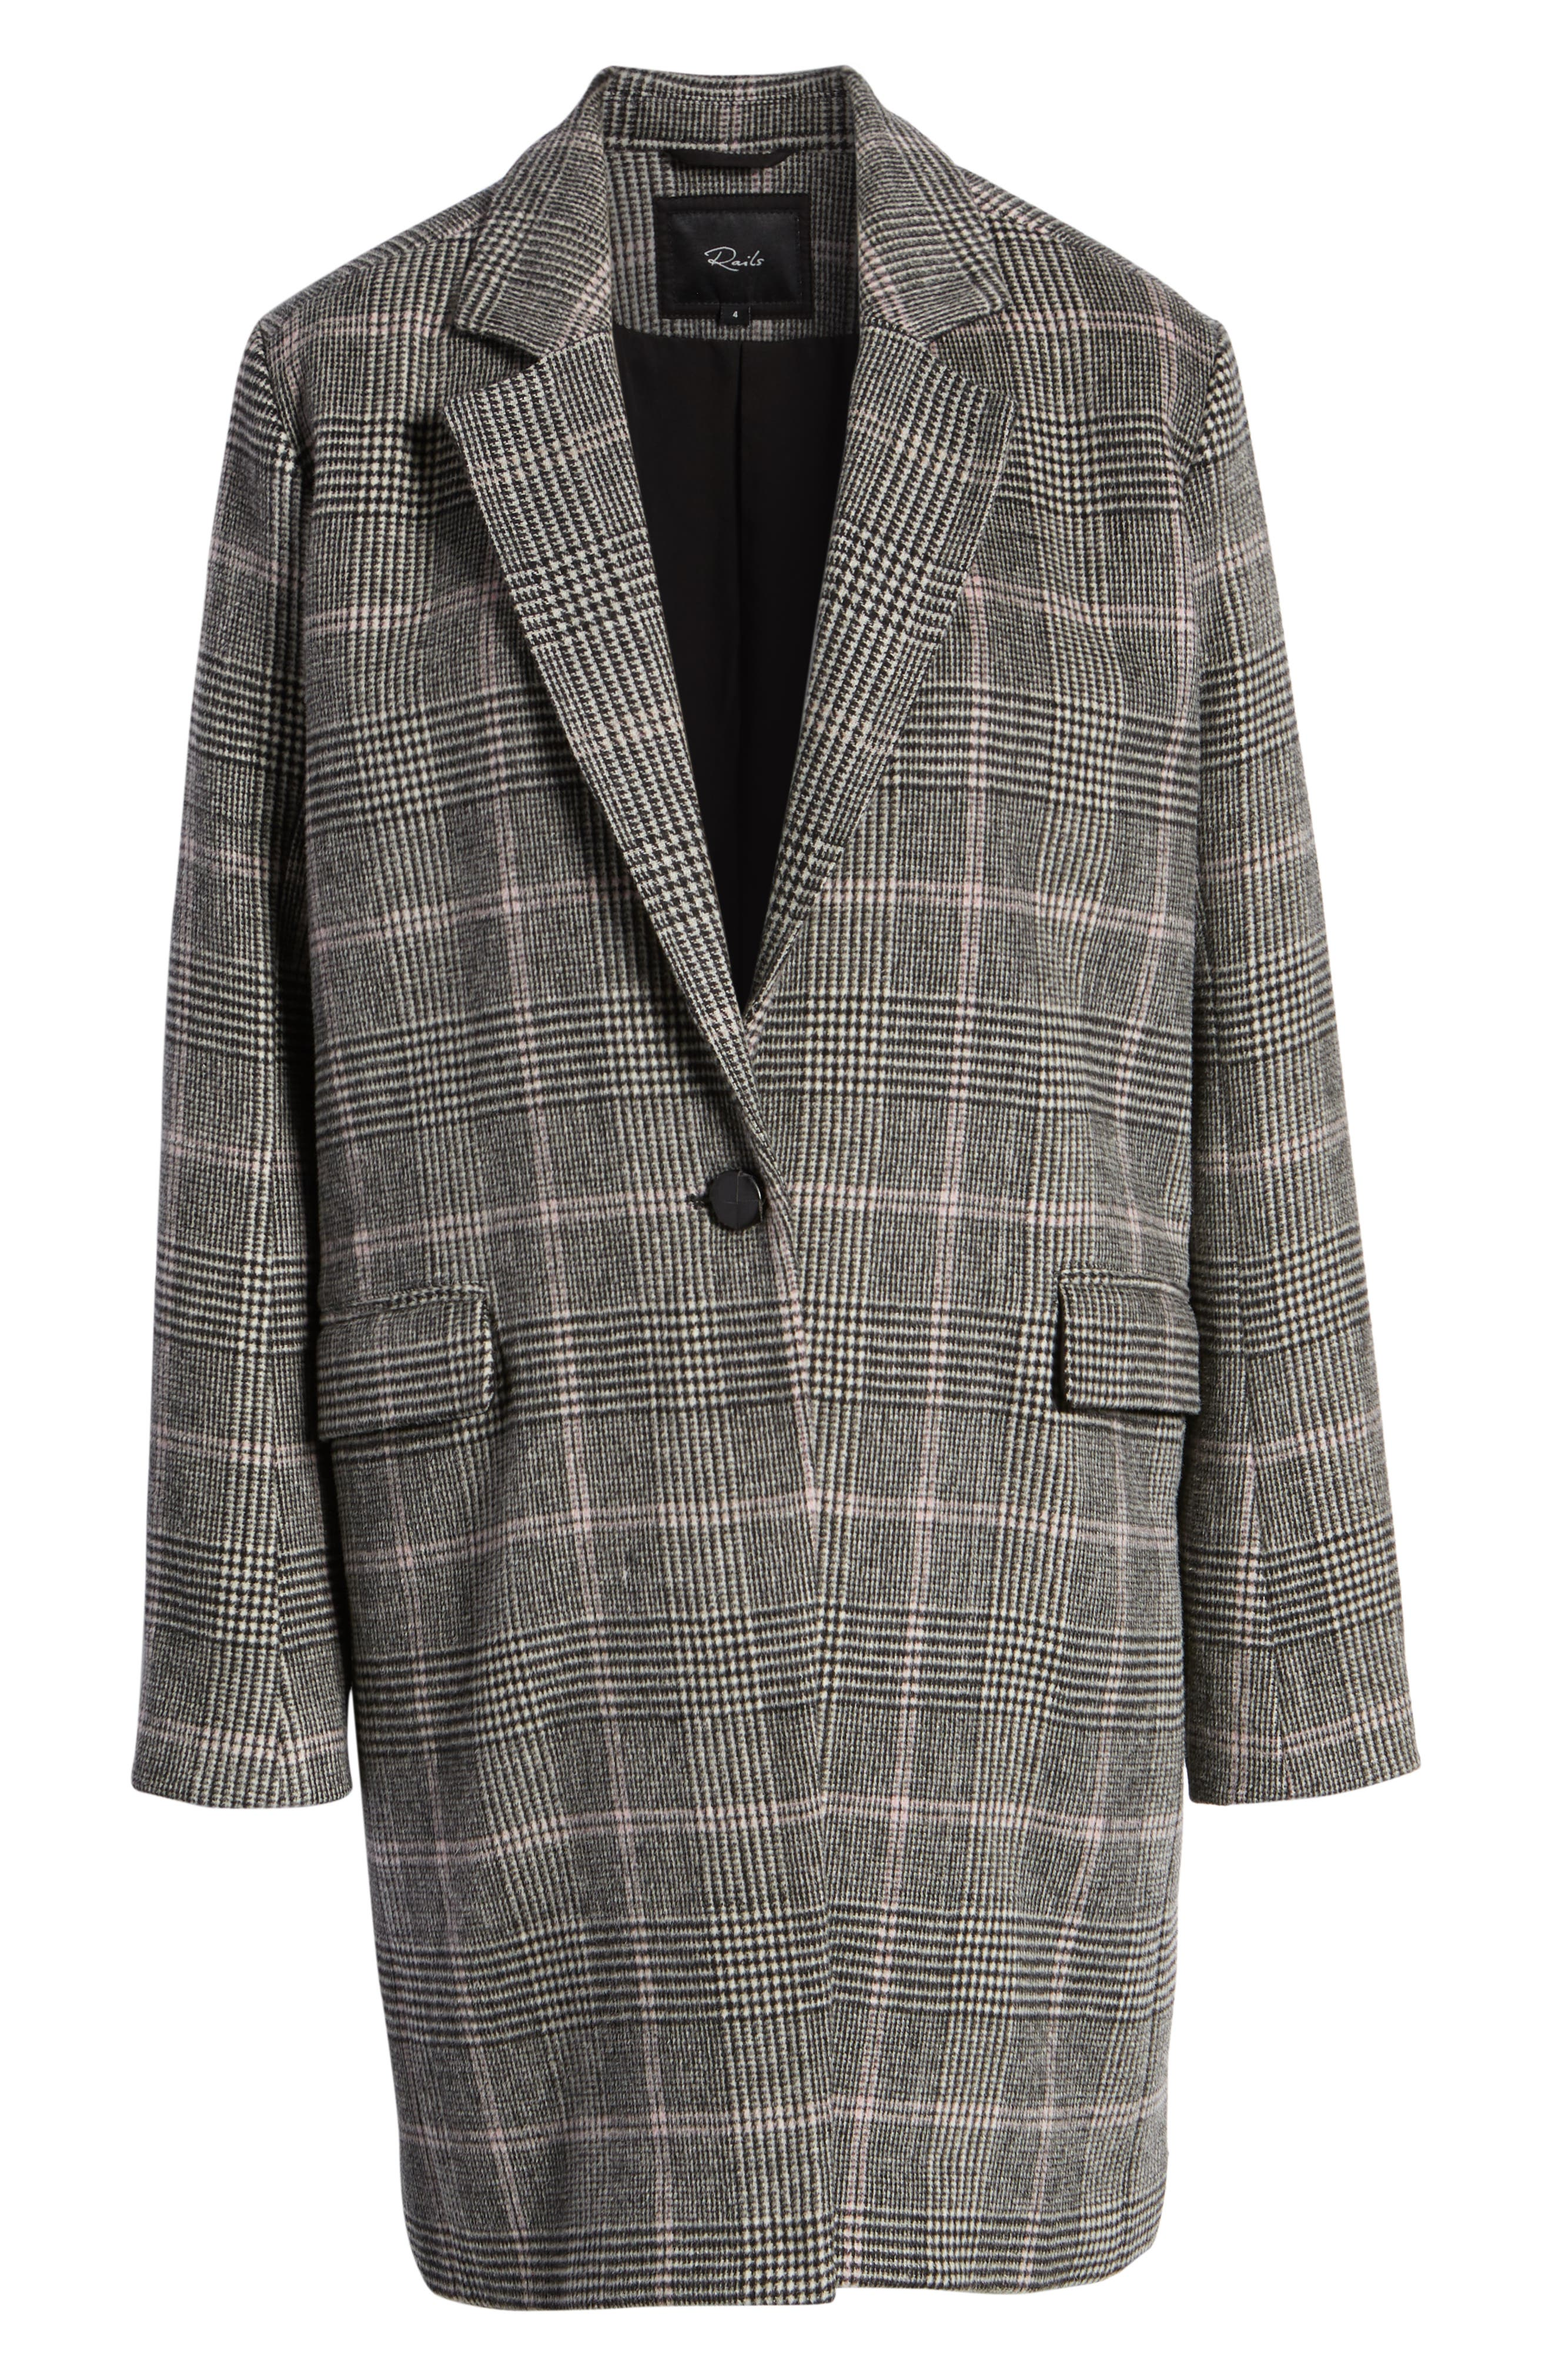 Anders Plaid Coat,                             Alternate thumbnail 7, color,                             CHARCOAL PINK PLAID